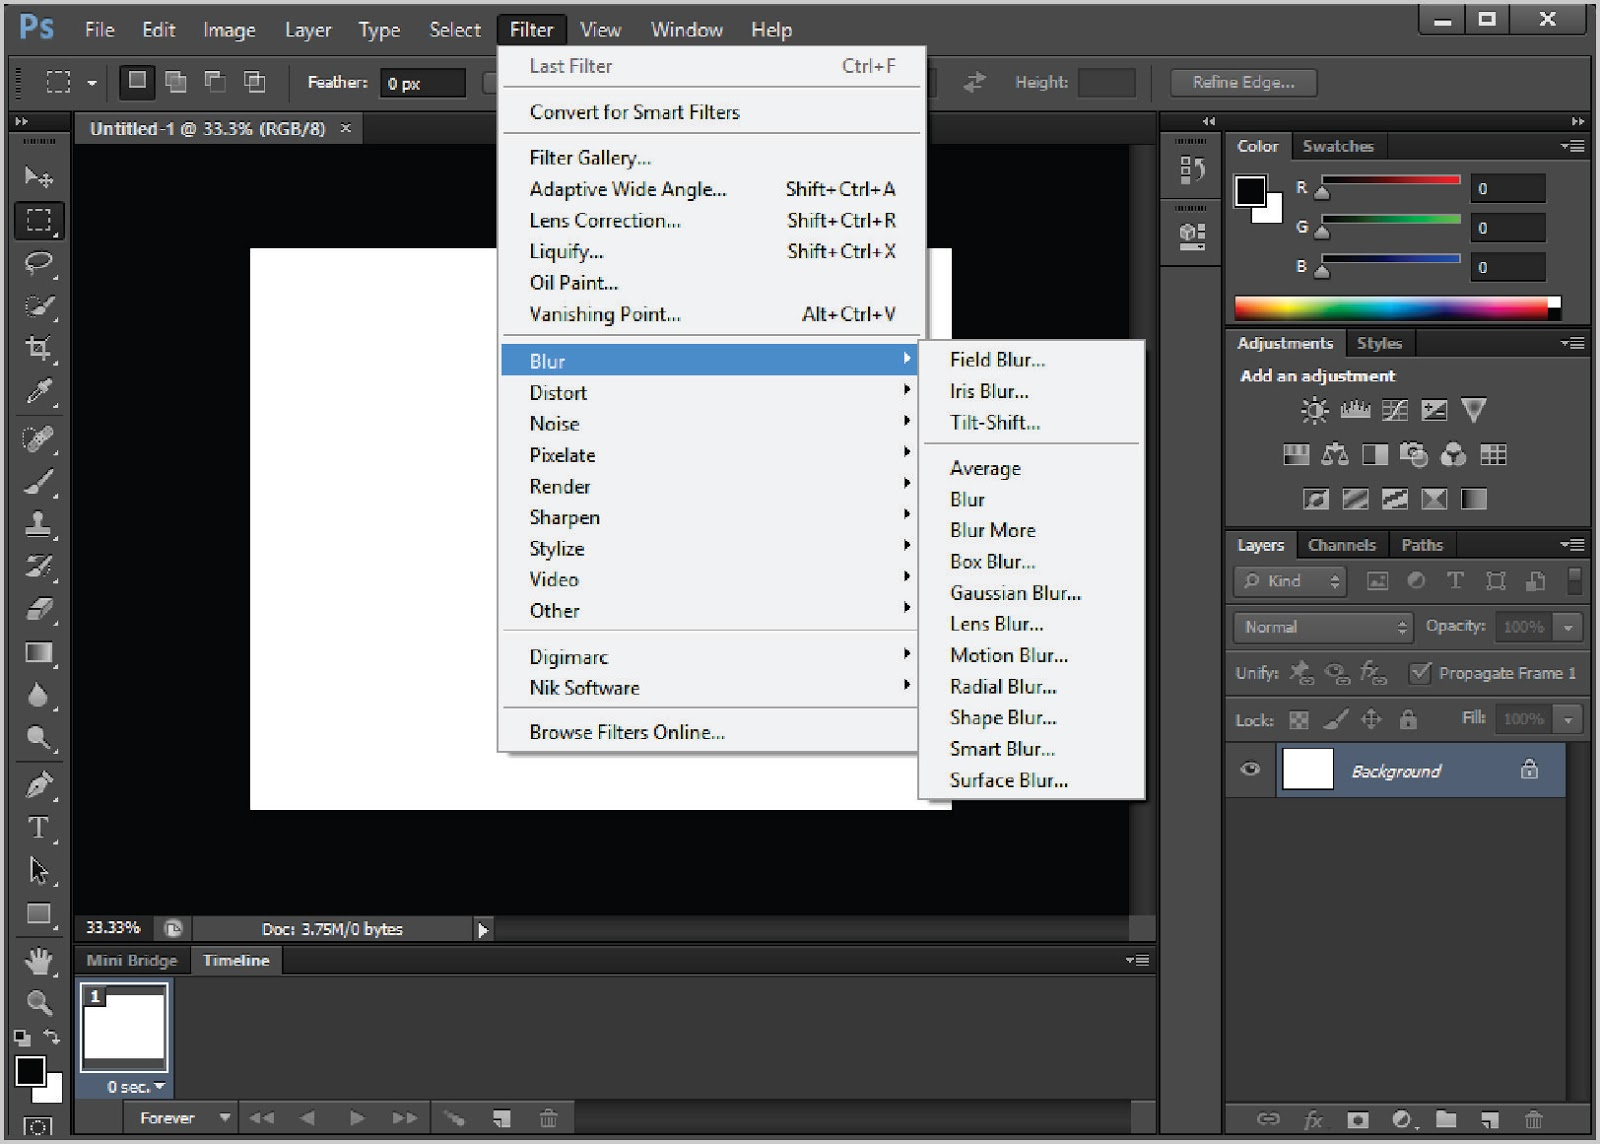 cara instal adobe photoshop cs6 full crack